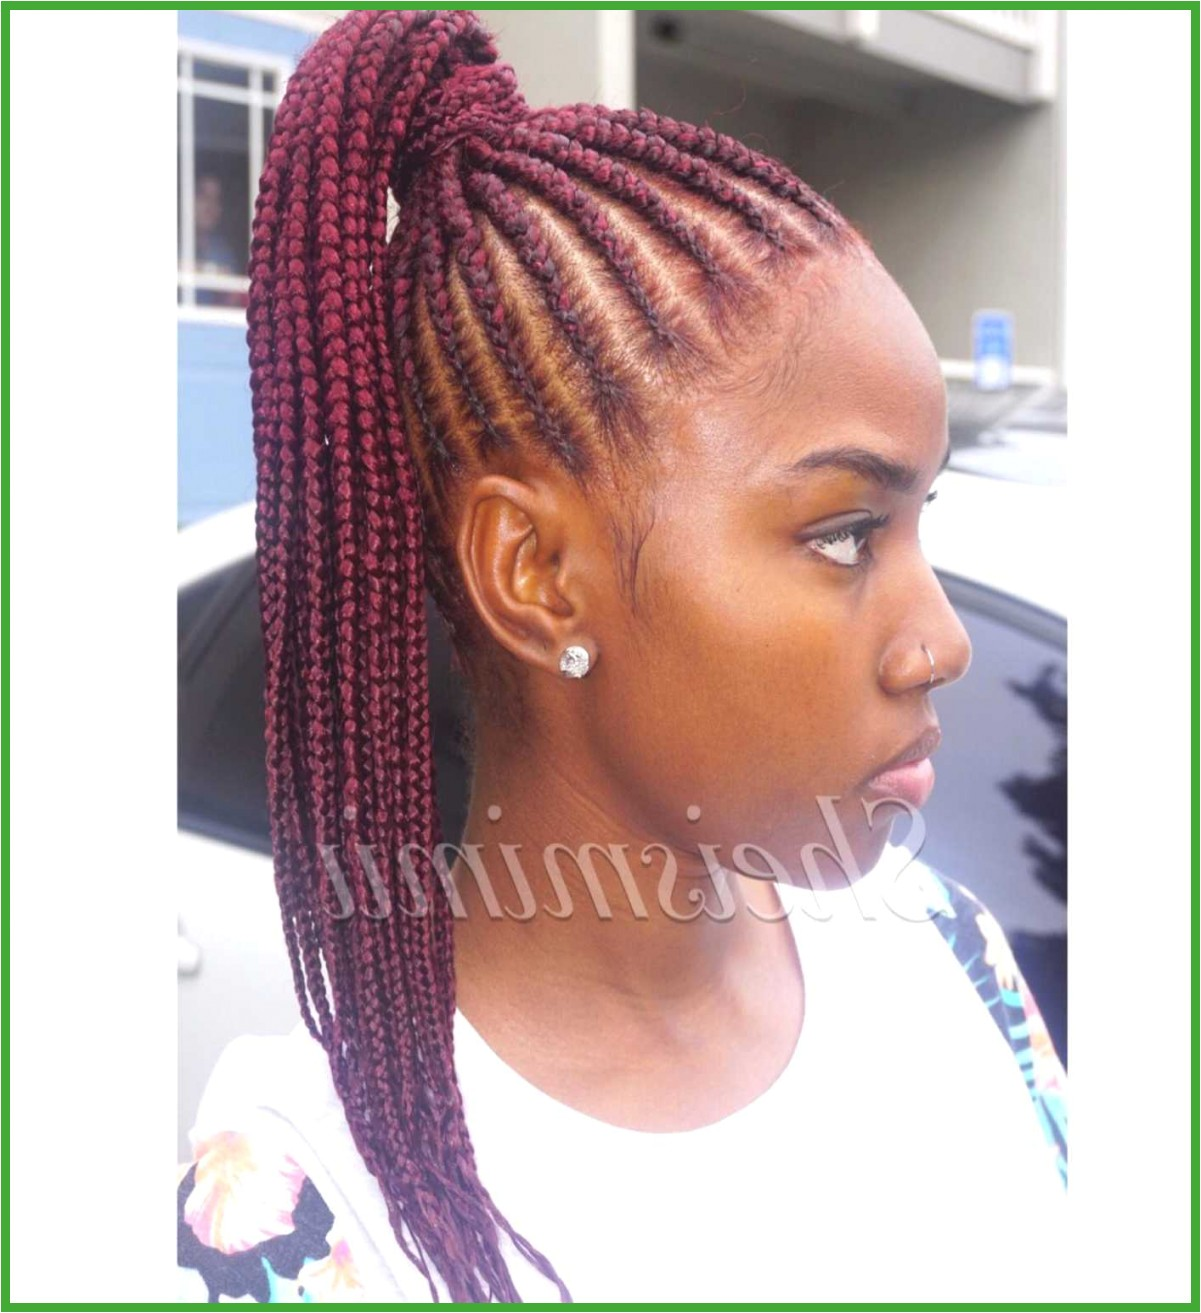 Hairstyles with Braids Best Big Braids Hairstyles Fresh Micro Hairstyles 0d Regrowhairproducts